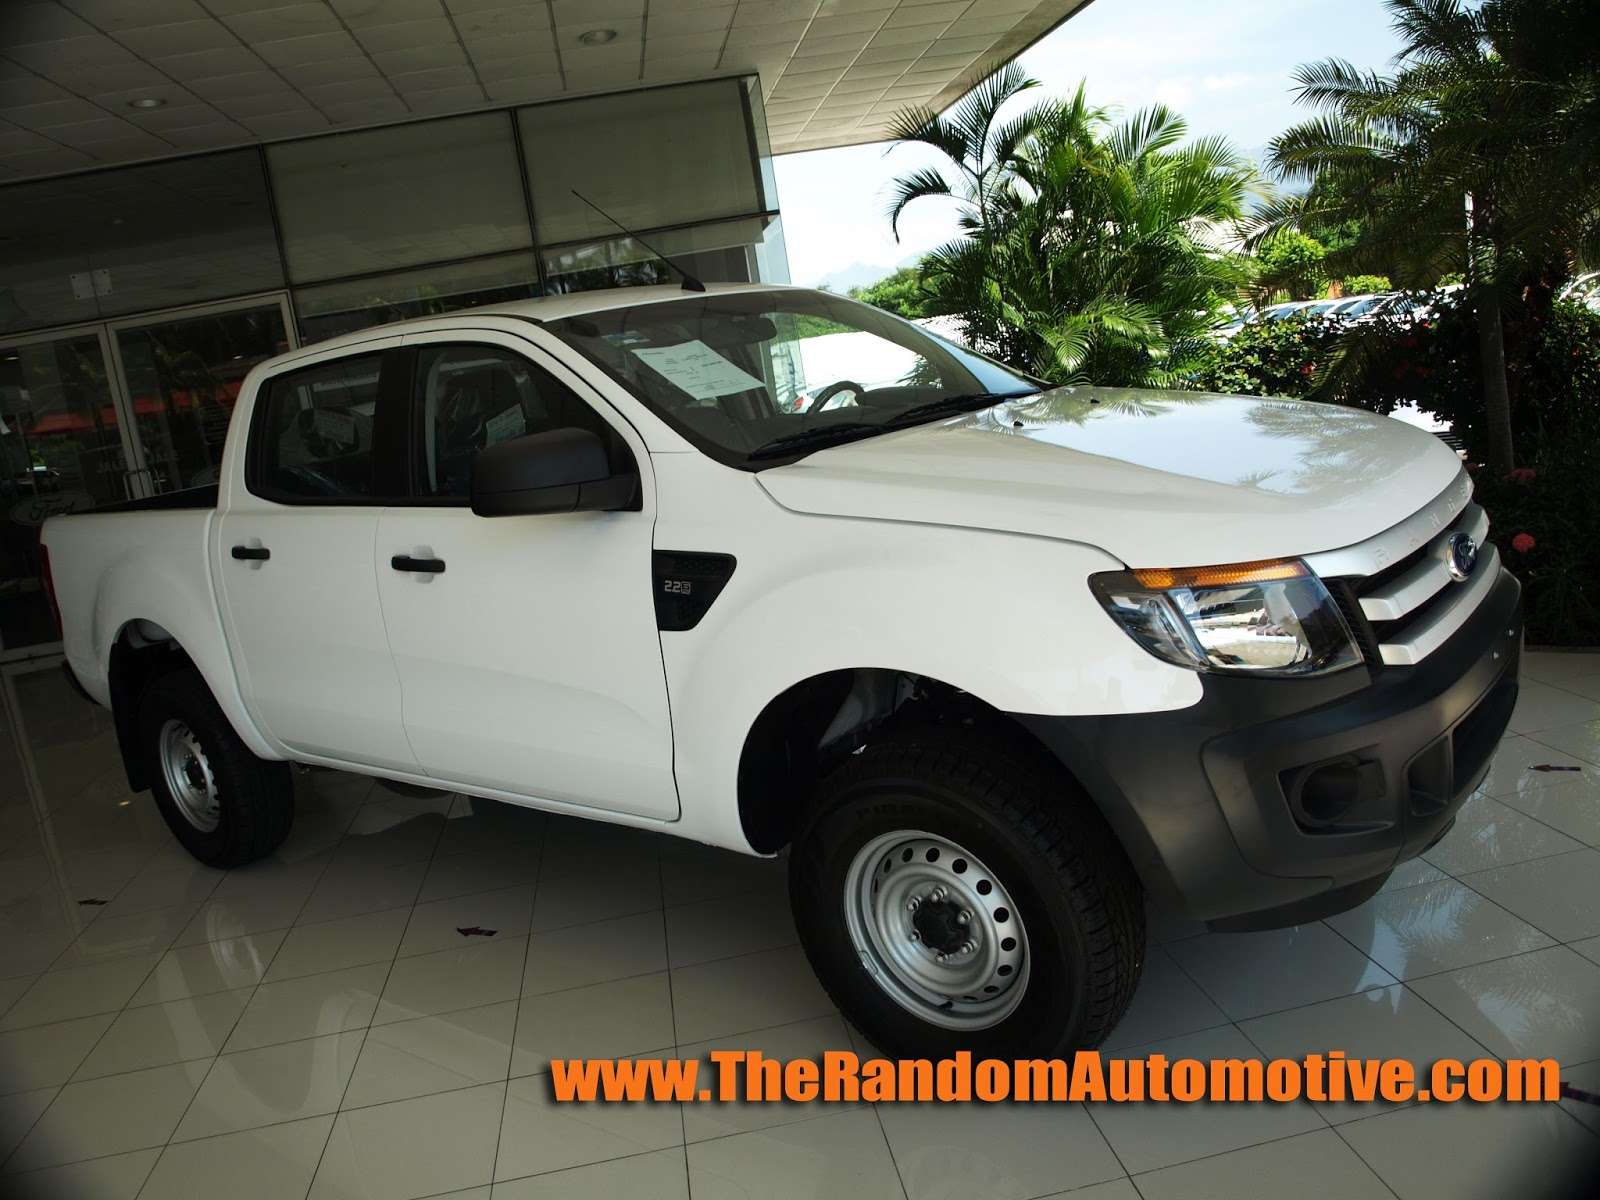 2014 Ford Ranger in Mexico ~ The Random Automotive